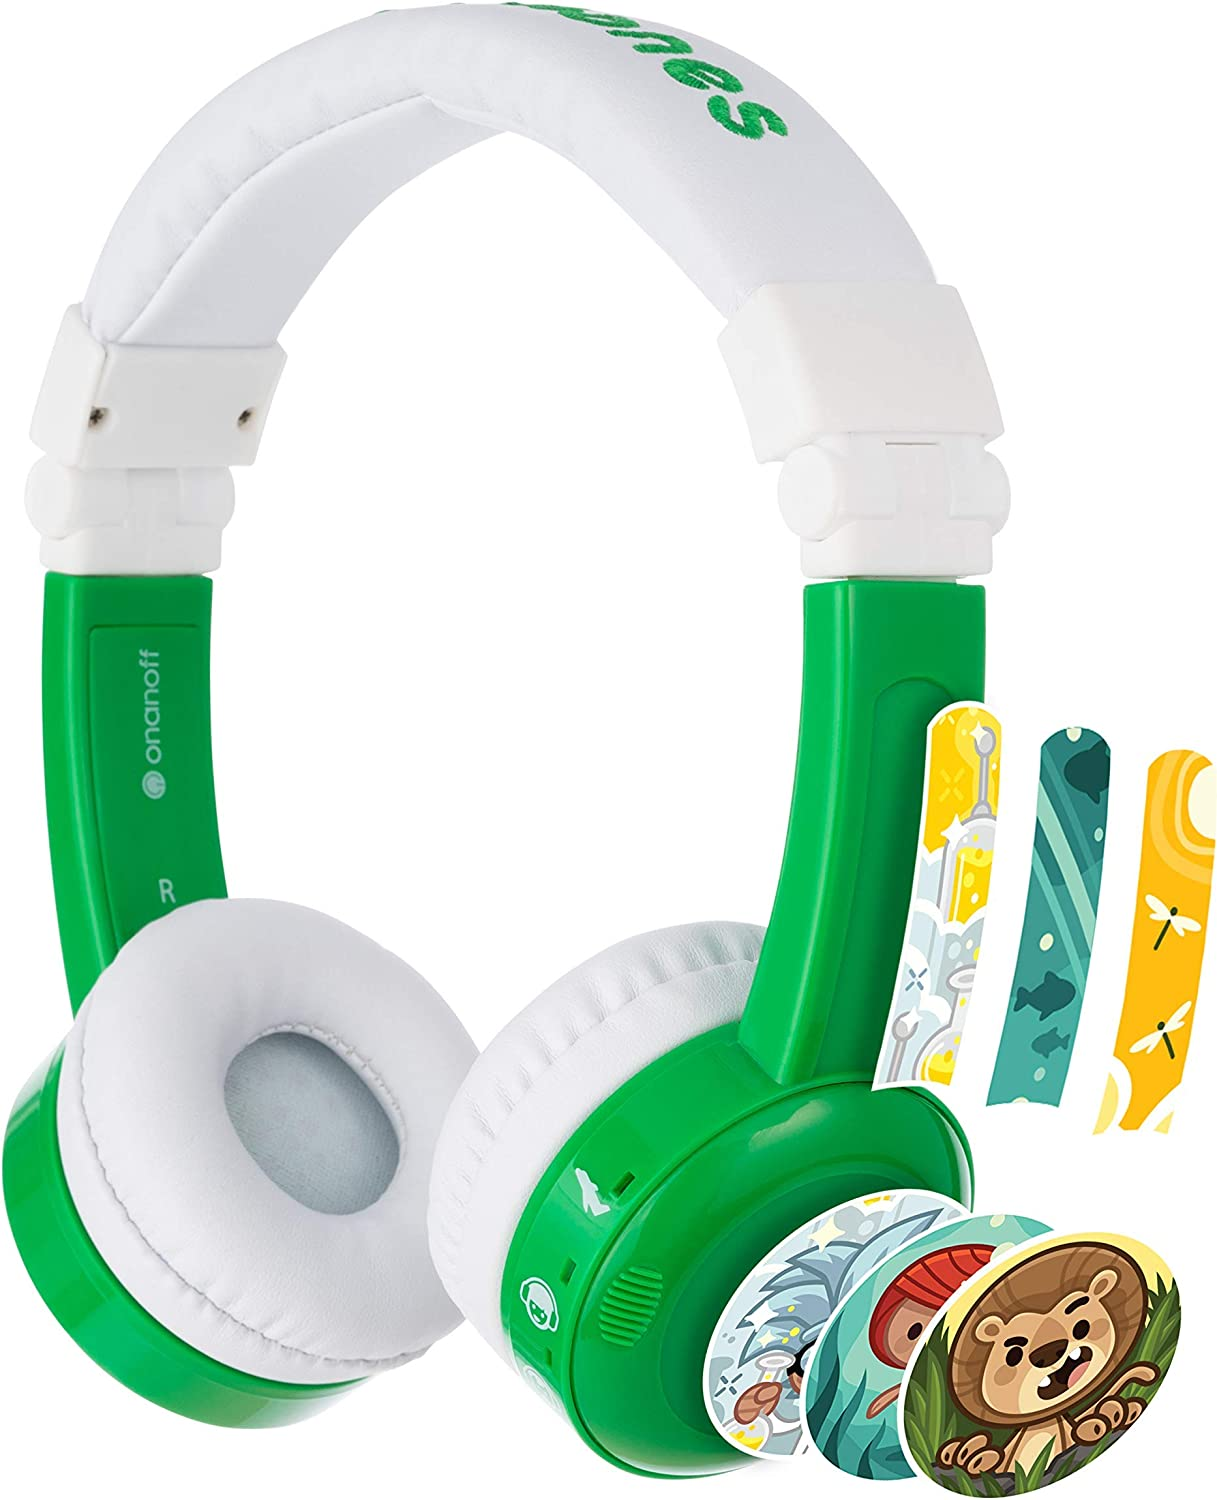 Amazon Com Onanoff Buddyphones Inflight Volume Limiting Kids Headphones 3 Volume Settings Of 75 85 And 94 Db Includes Travel Mode Perfect For Airplanes Trains And Cars Built In Audio Sharing Cable Green Electronics